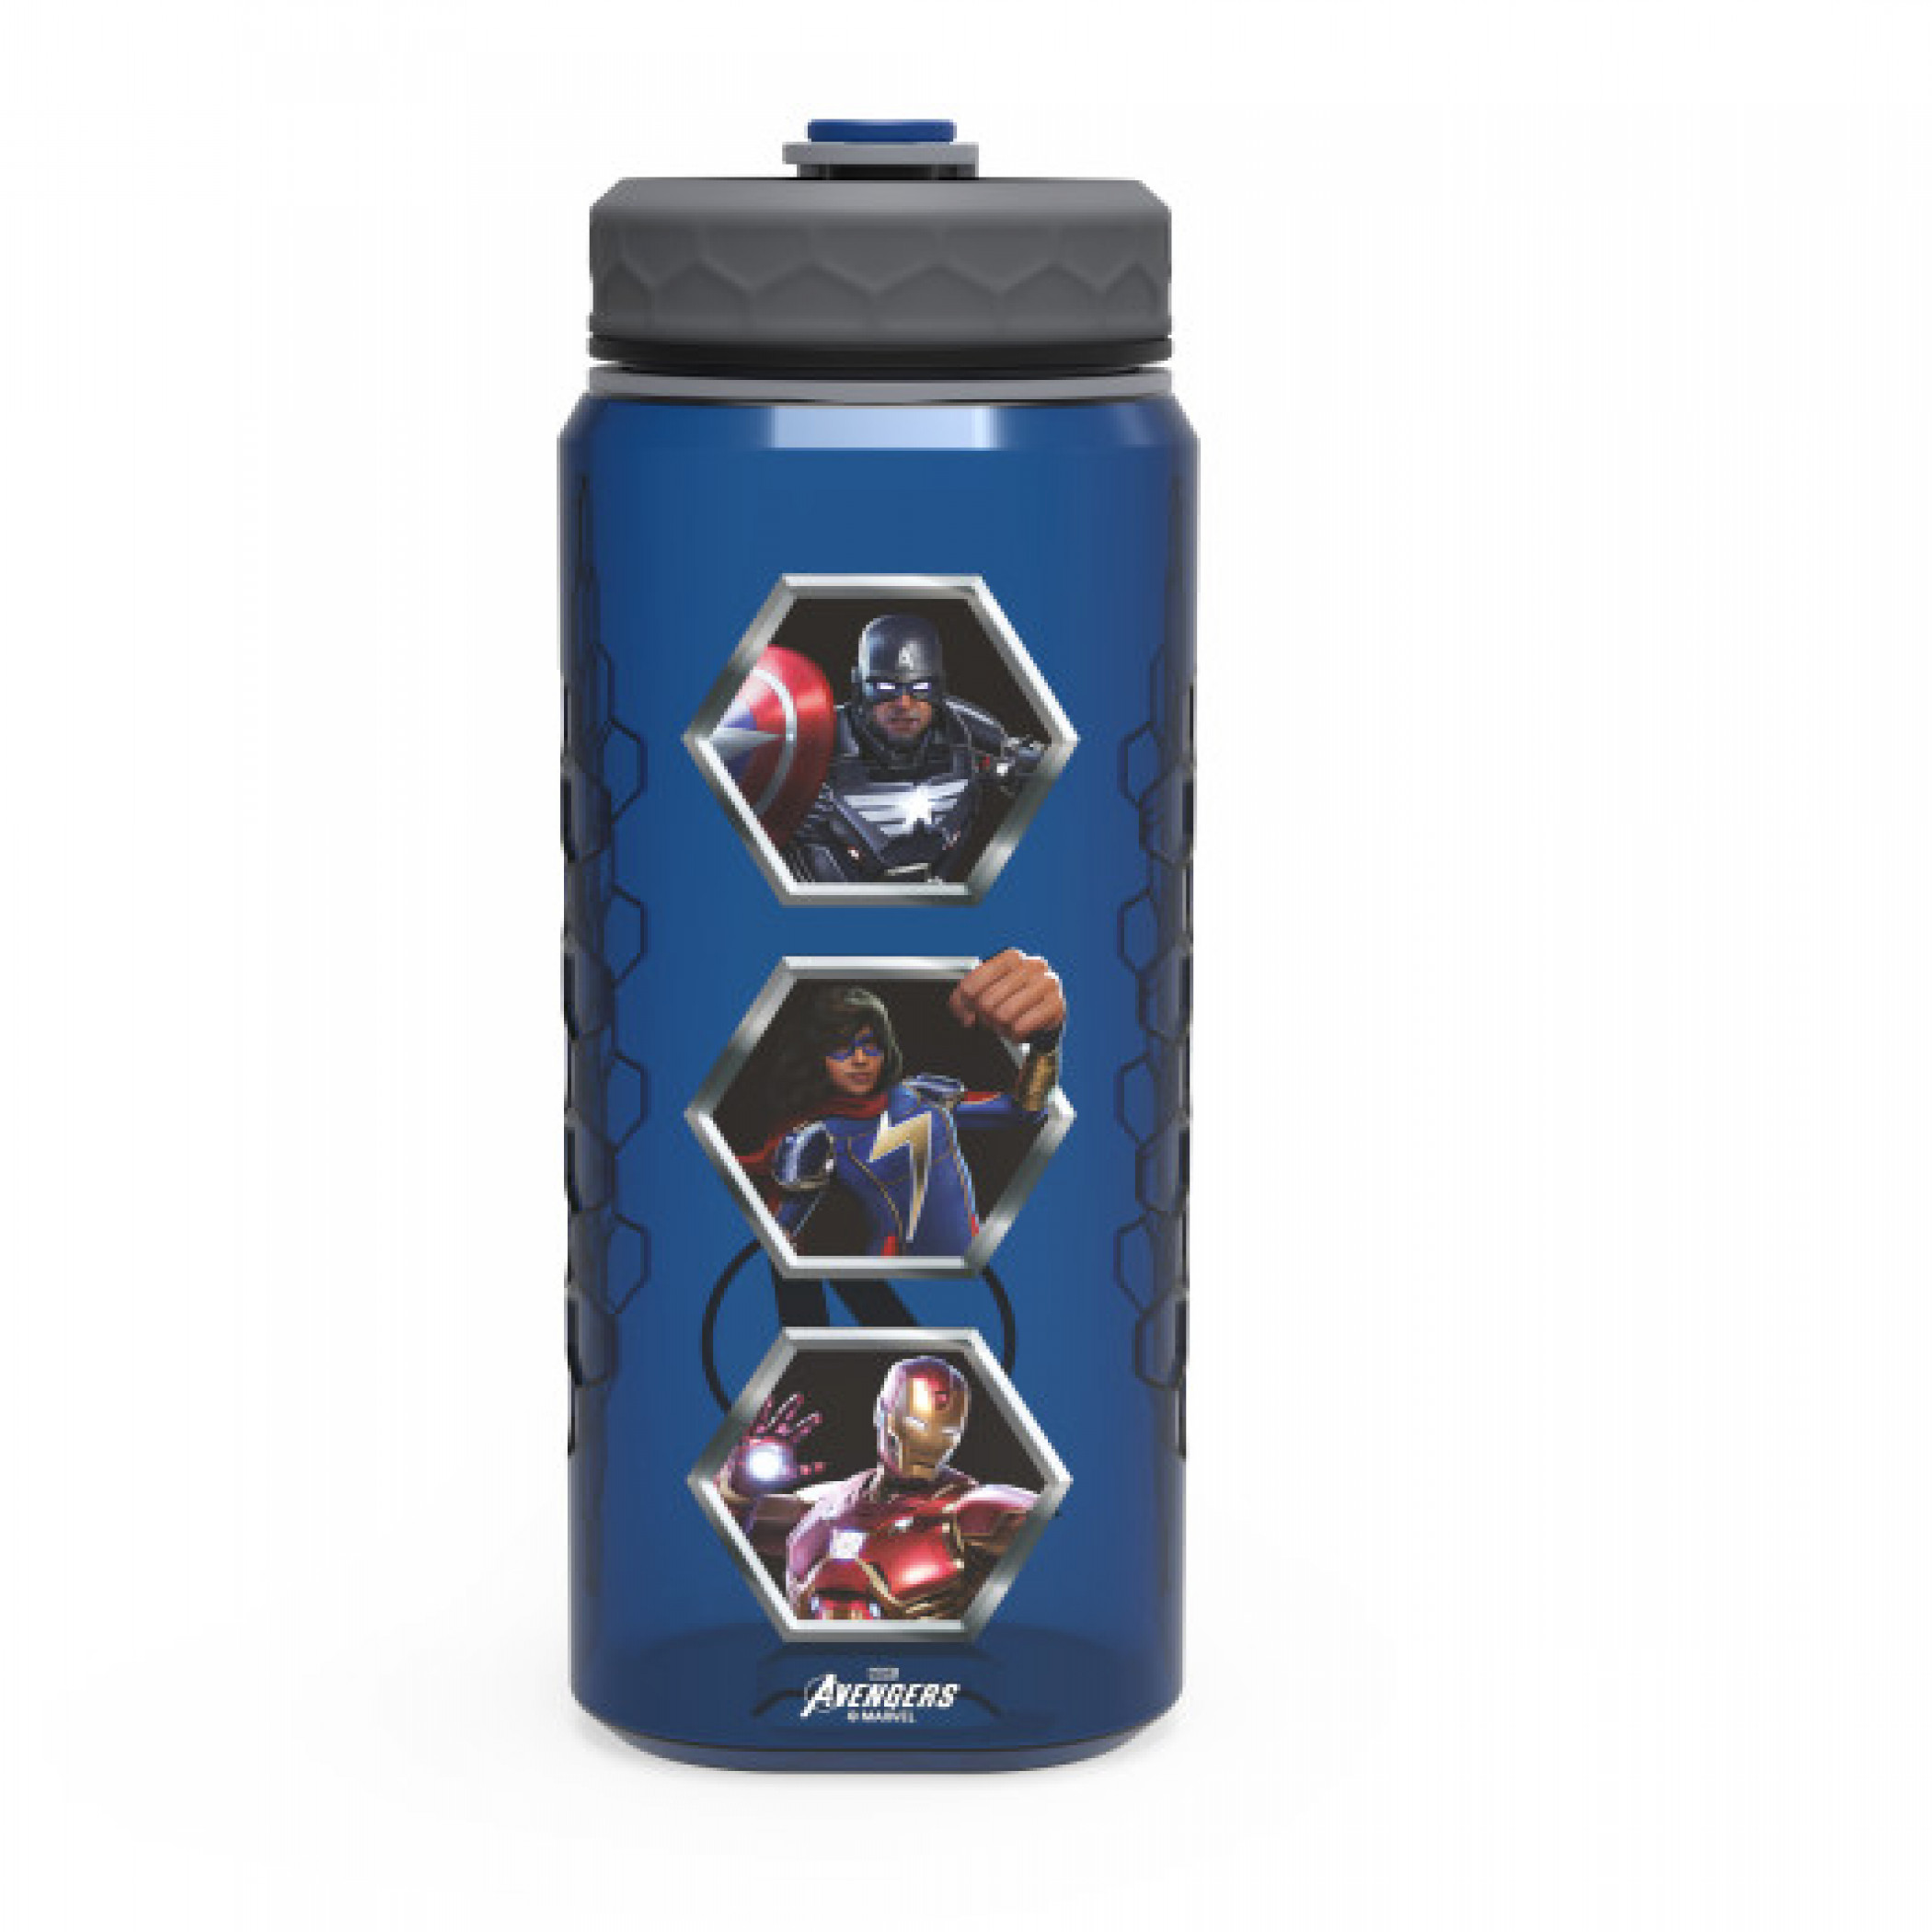 Avengers Marvel Games 36oz Rugged Plastic Water Bottle